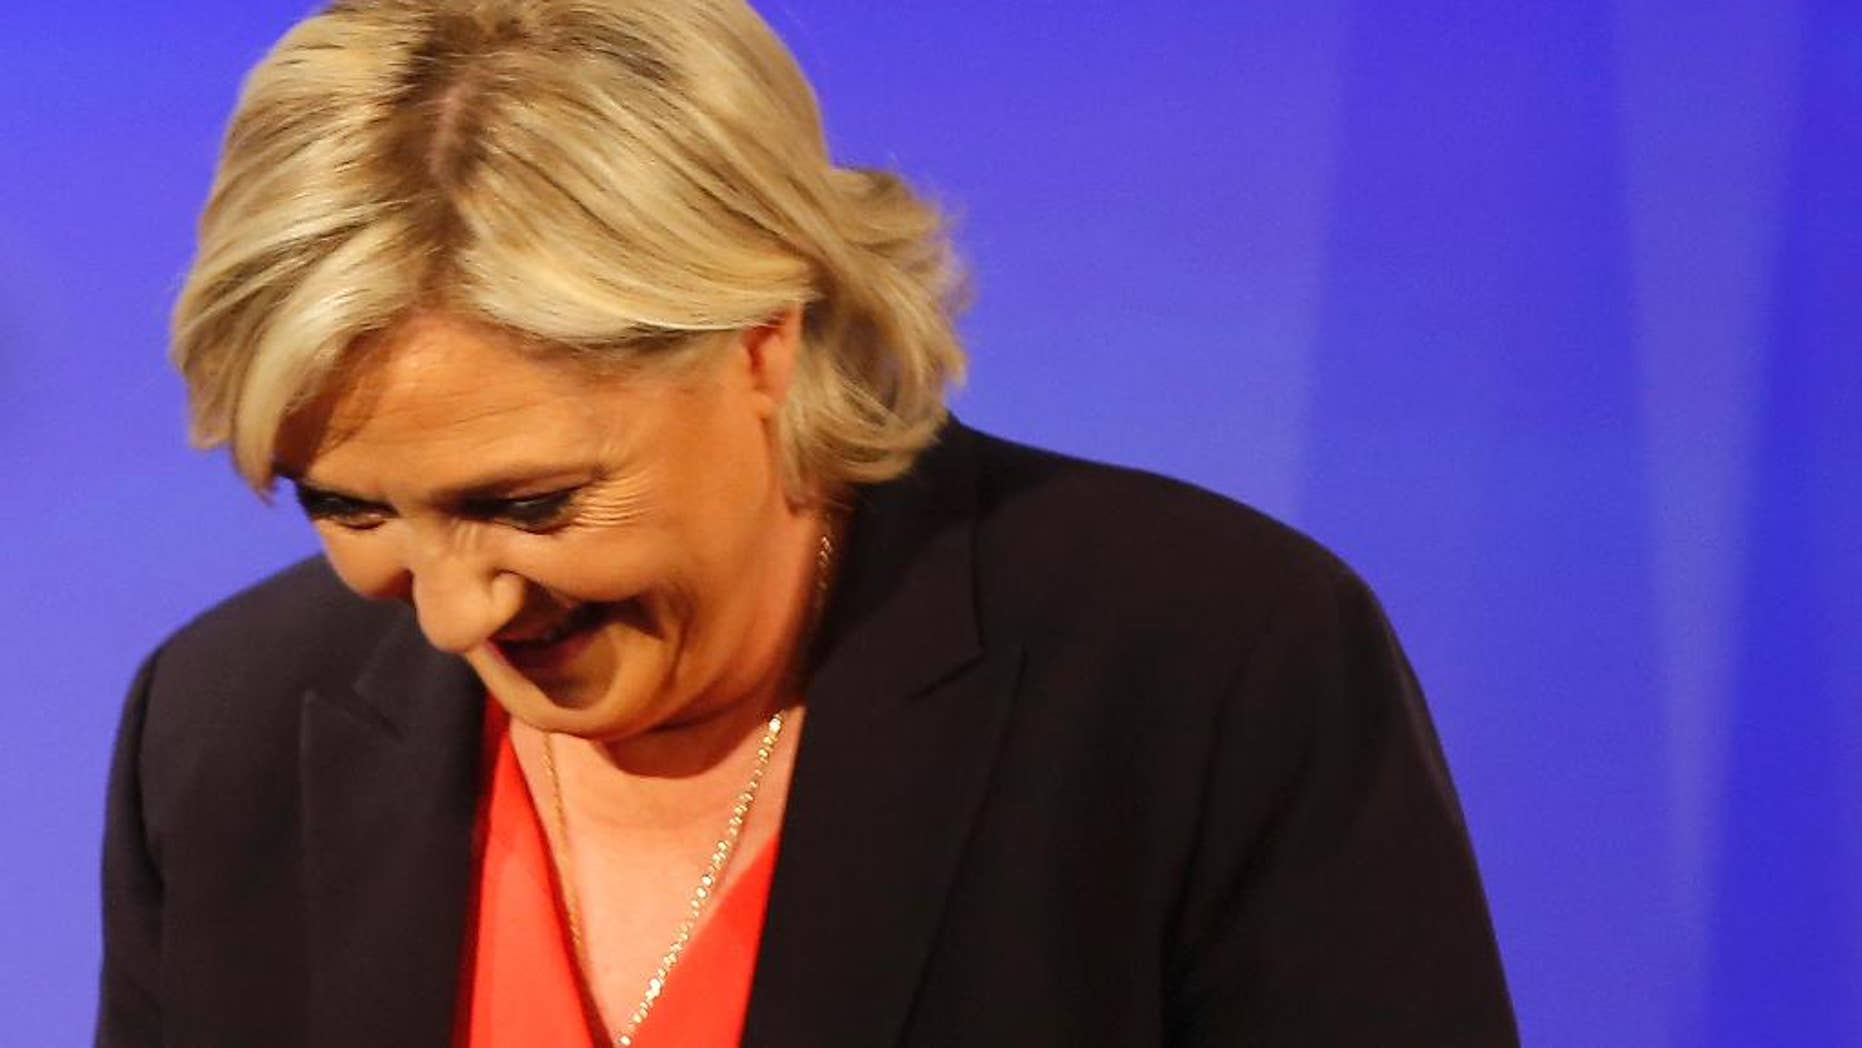 French far-right presidential candidate Marine Le Pen looks down after her speech at her election day headquarters Sunday, May 7, 2017 in Paris. Le Pen says she has called centrist Emmanuel Macron to congratulate him and says the vote confirms her National Front party and its allies as the leader of France's opposition. (AP Photo/Michel Euler)